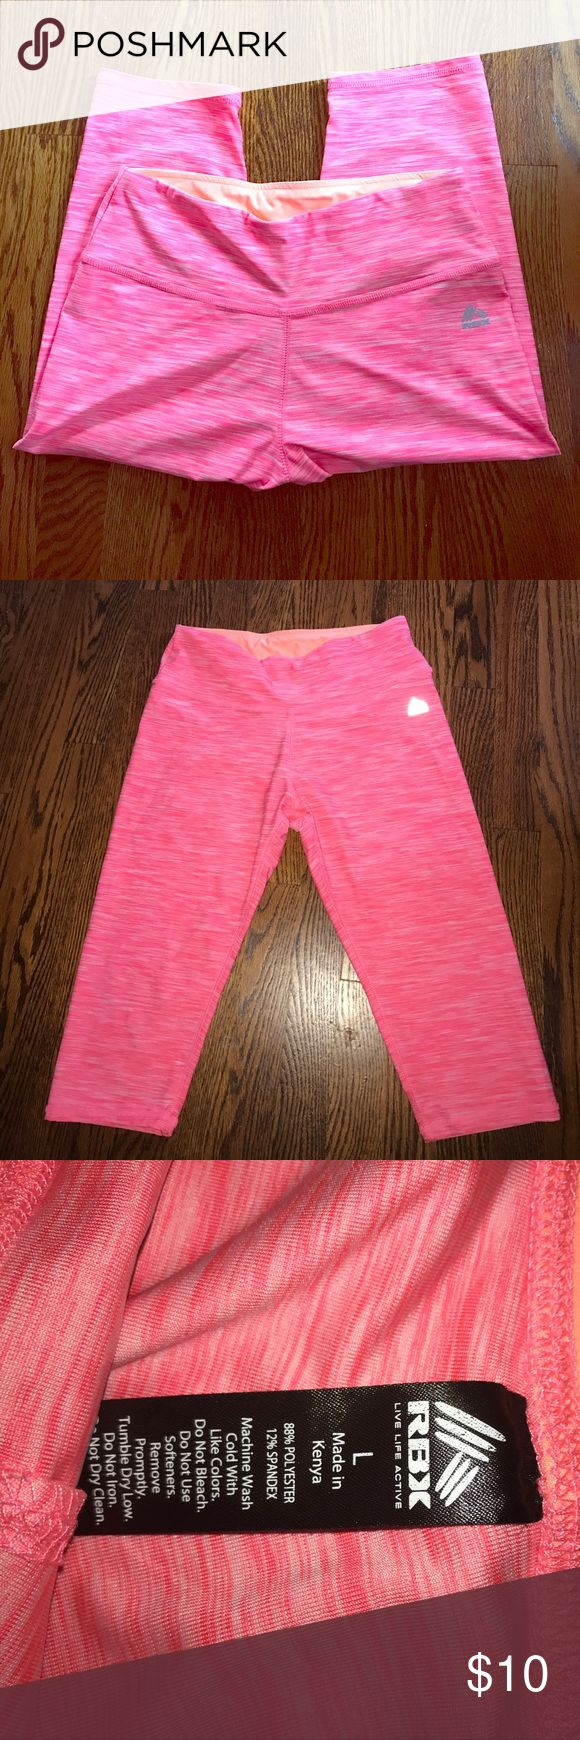 Neon pink cropped leggings Perfect for working out or lounging. Super bright and pretty color. Worn once/no flaws. 88% polyester 12% spandex. I would recommend wearing a light colored panty and you should be good to go. Second picture shows the accurate color RBX Pants Leggings